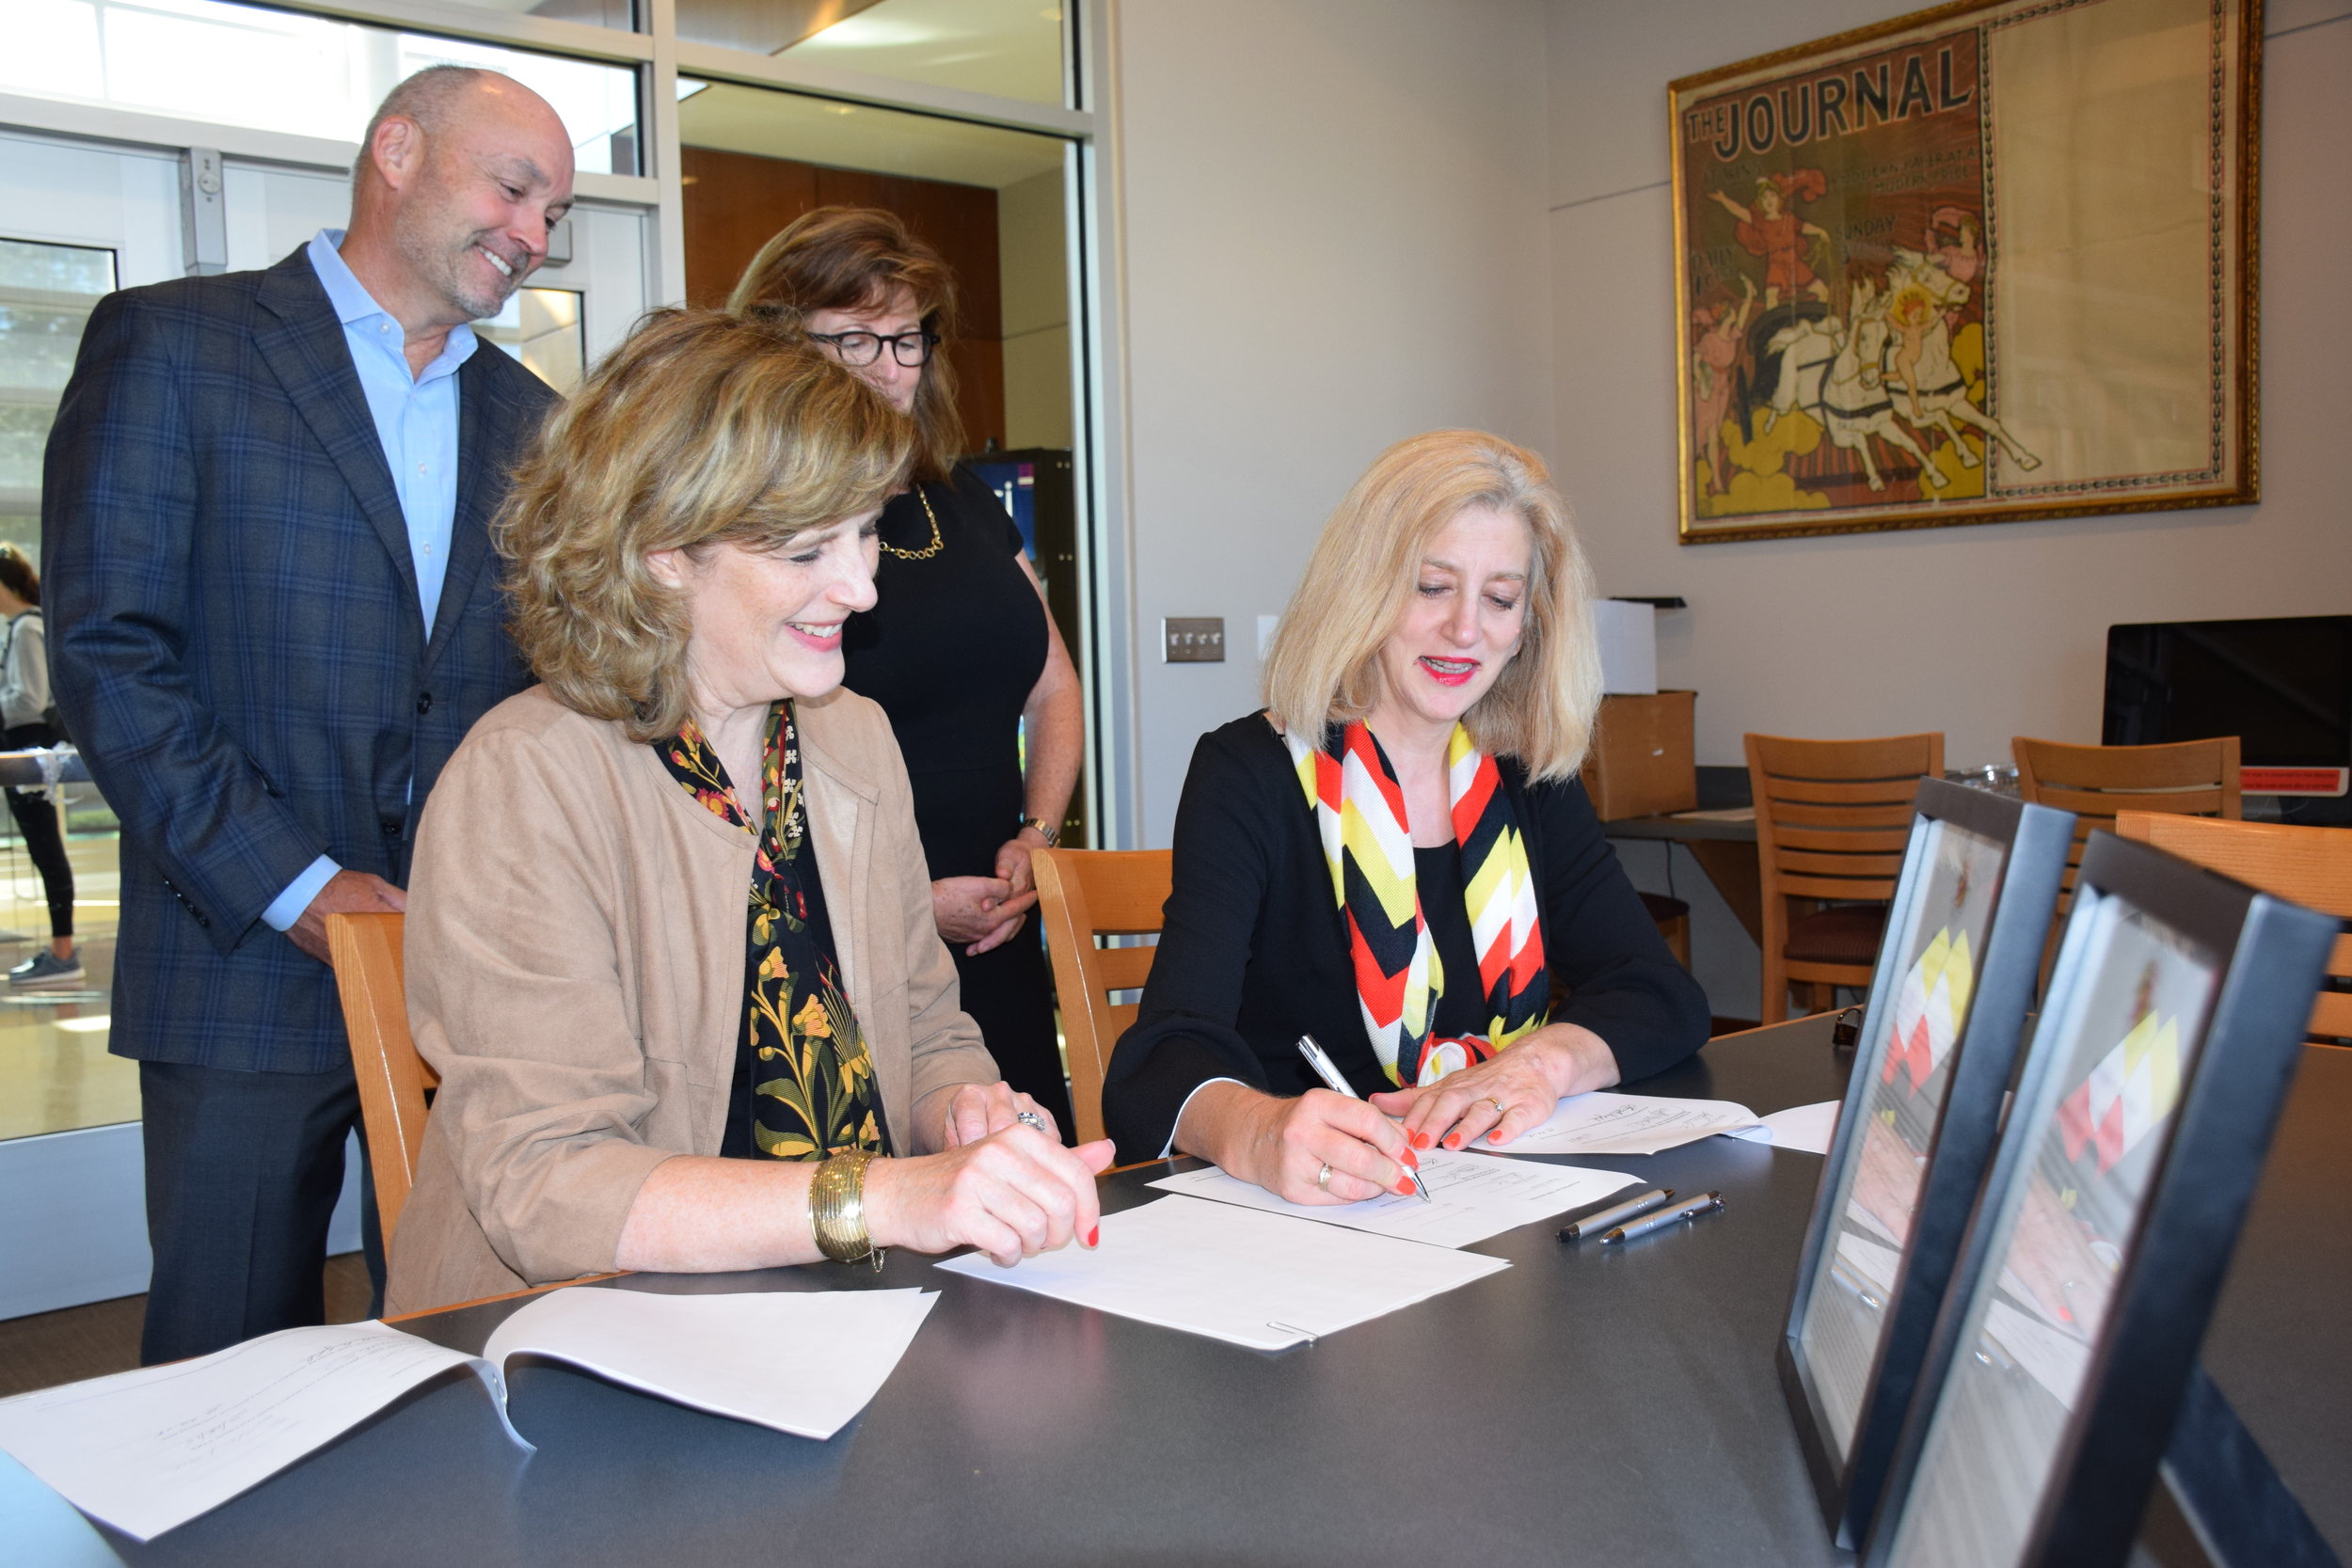 Lucy A. Dalglish (left), dean of the University of Maryland Philip Merrill College of Journalism, and Andrea Chamblee ('83) sign an agreement in the Gaylord Library of John S. and James L. Knight Hall to establish a scholarship in honor of John McNamara ('83) as friends watch in the background. (Photo courtesy of Alexander Pyles)